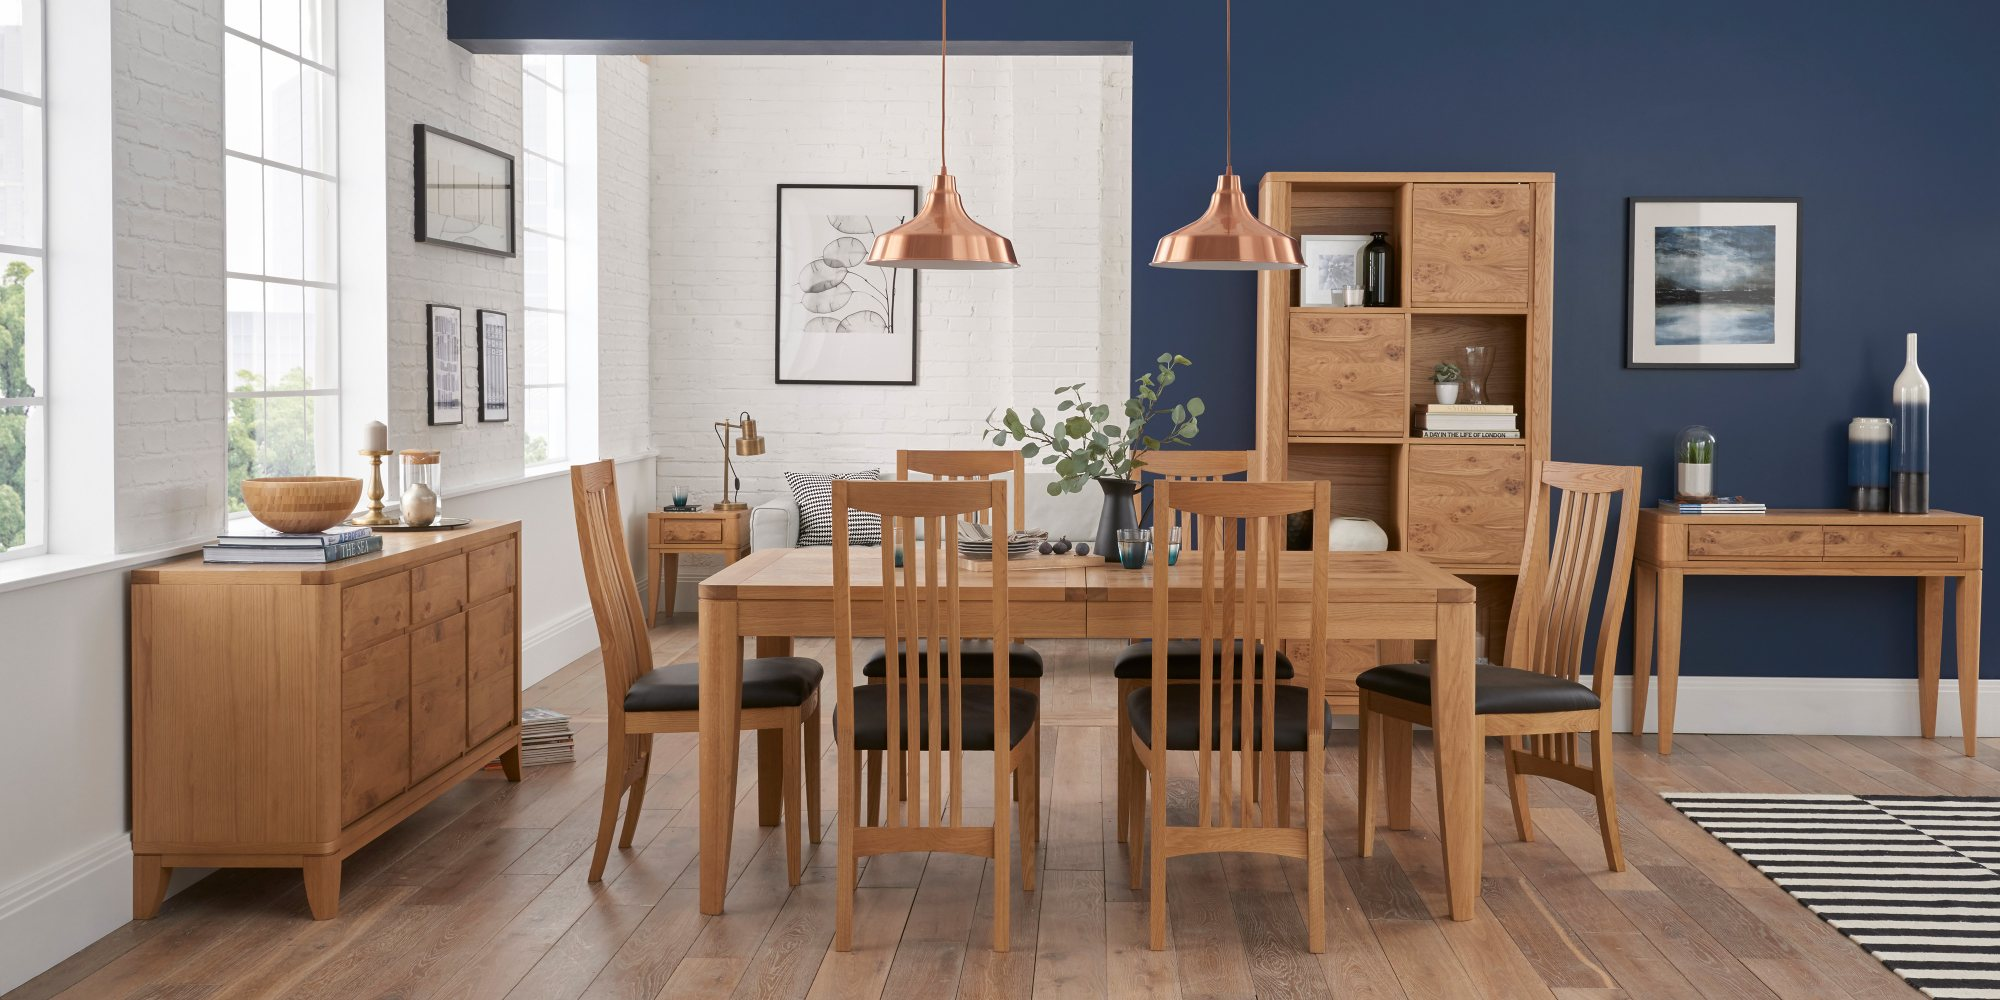 WILLOW PARK DINING SET WITH WOODEN CHAIR L180cm EXTENDING TO L230cm